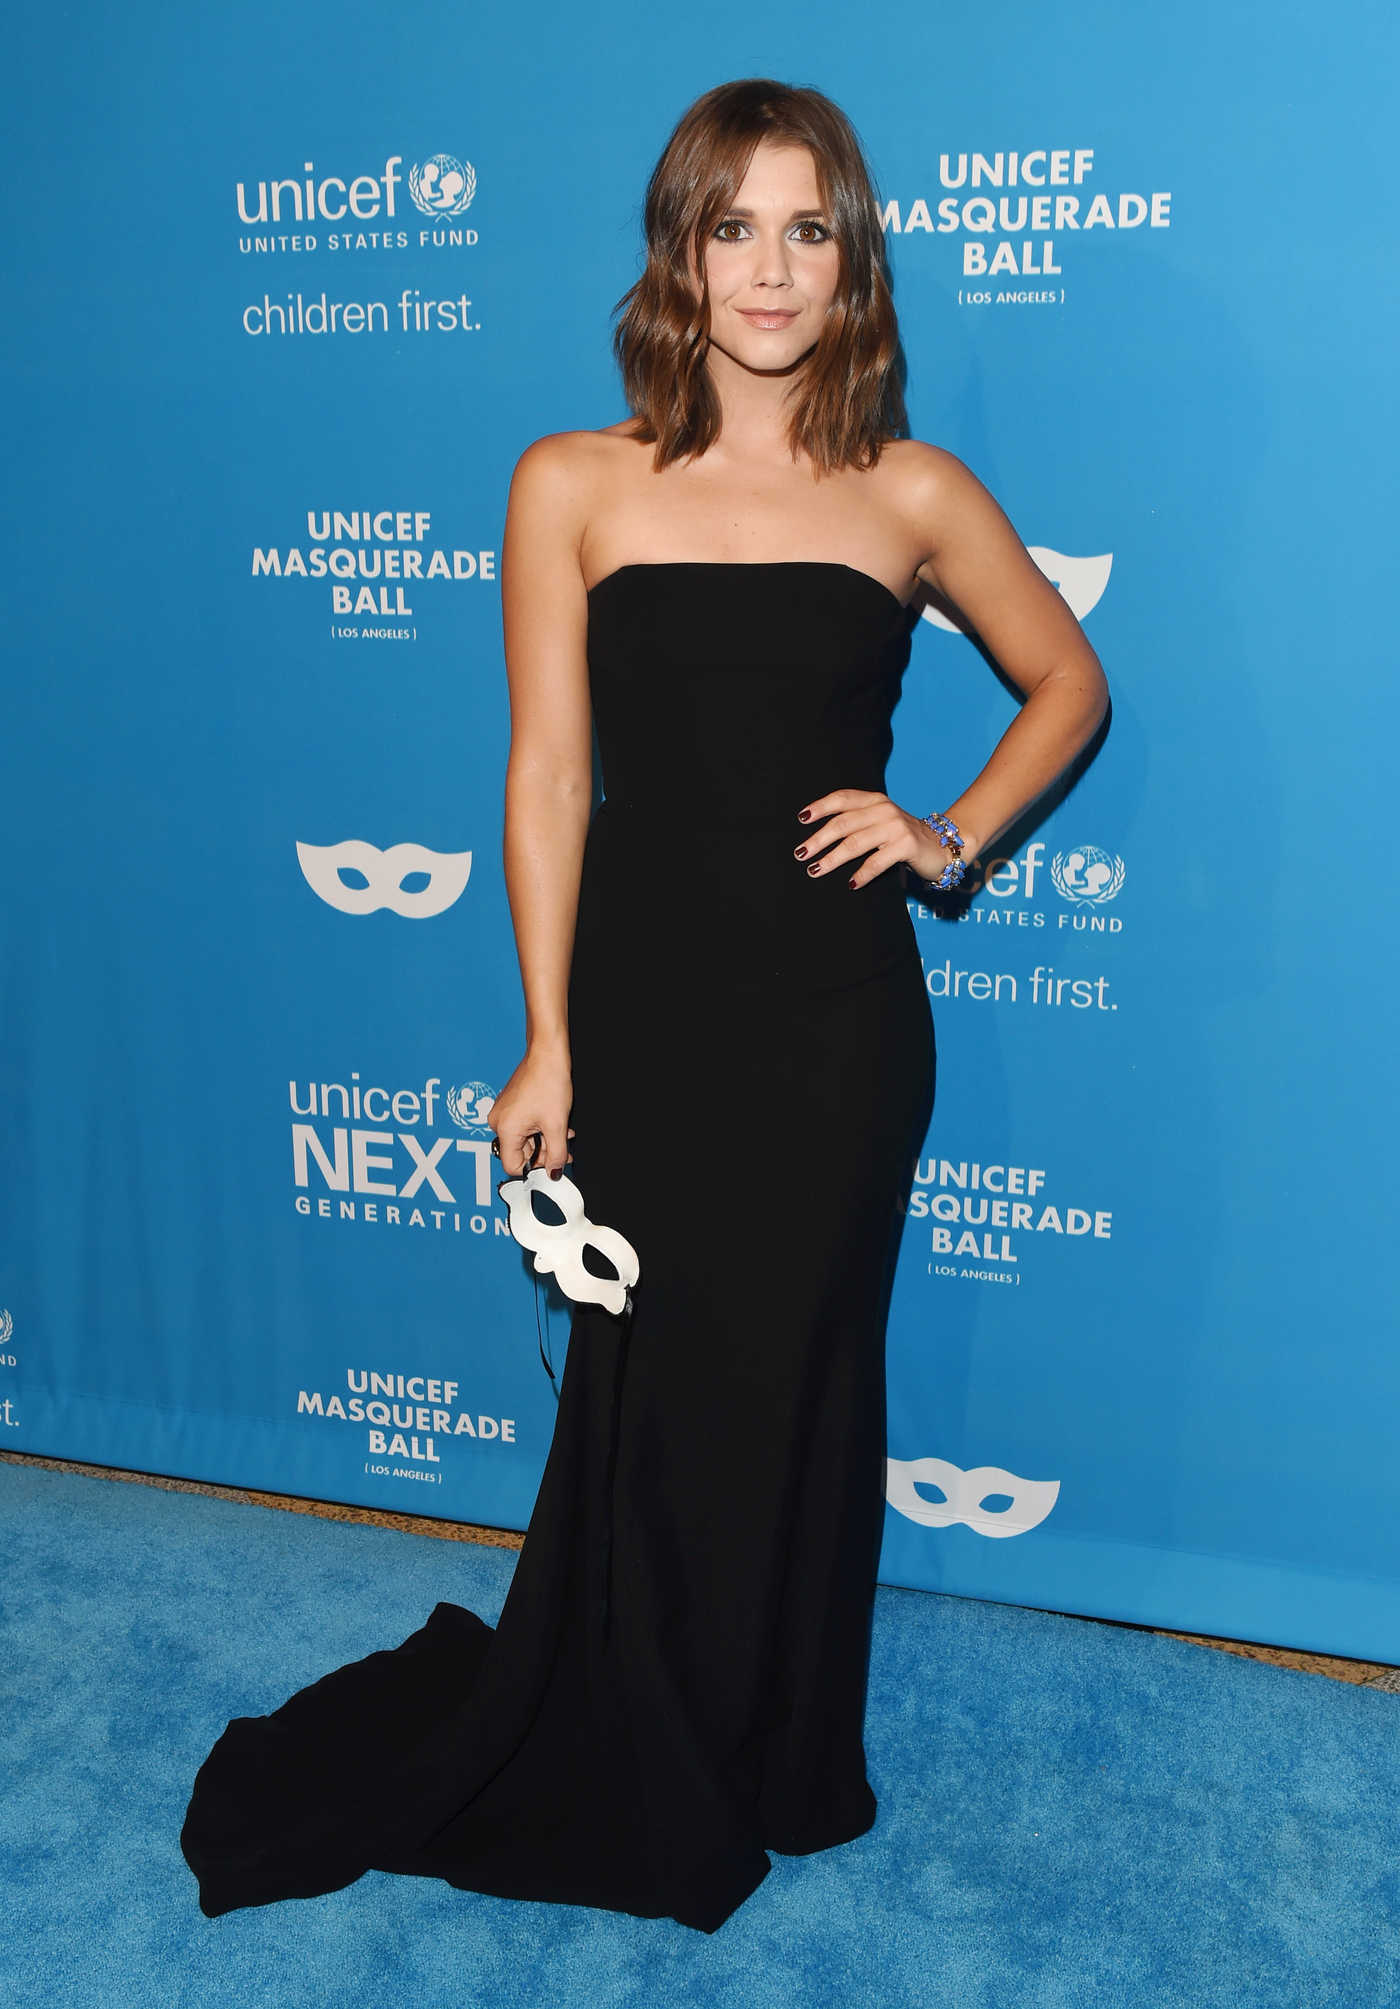 Alexandra Chando at the 2016 UNICEF Masquerade Ball in Los Angeles 10/27/2016